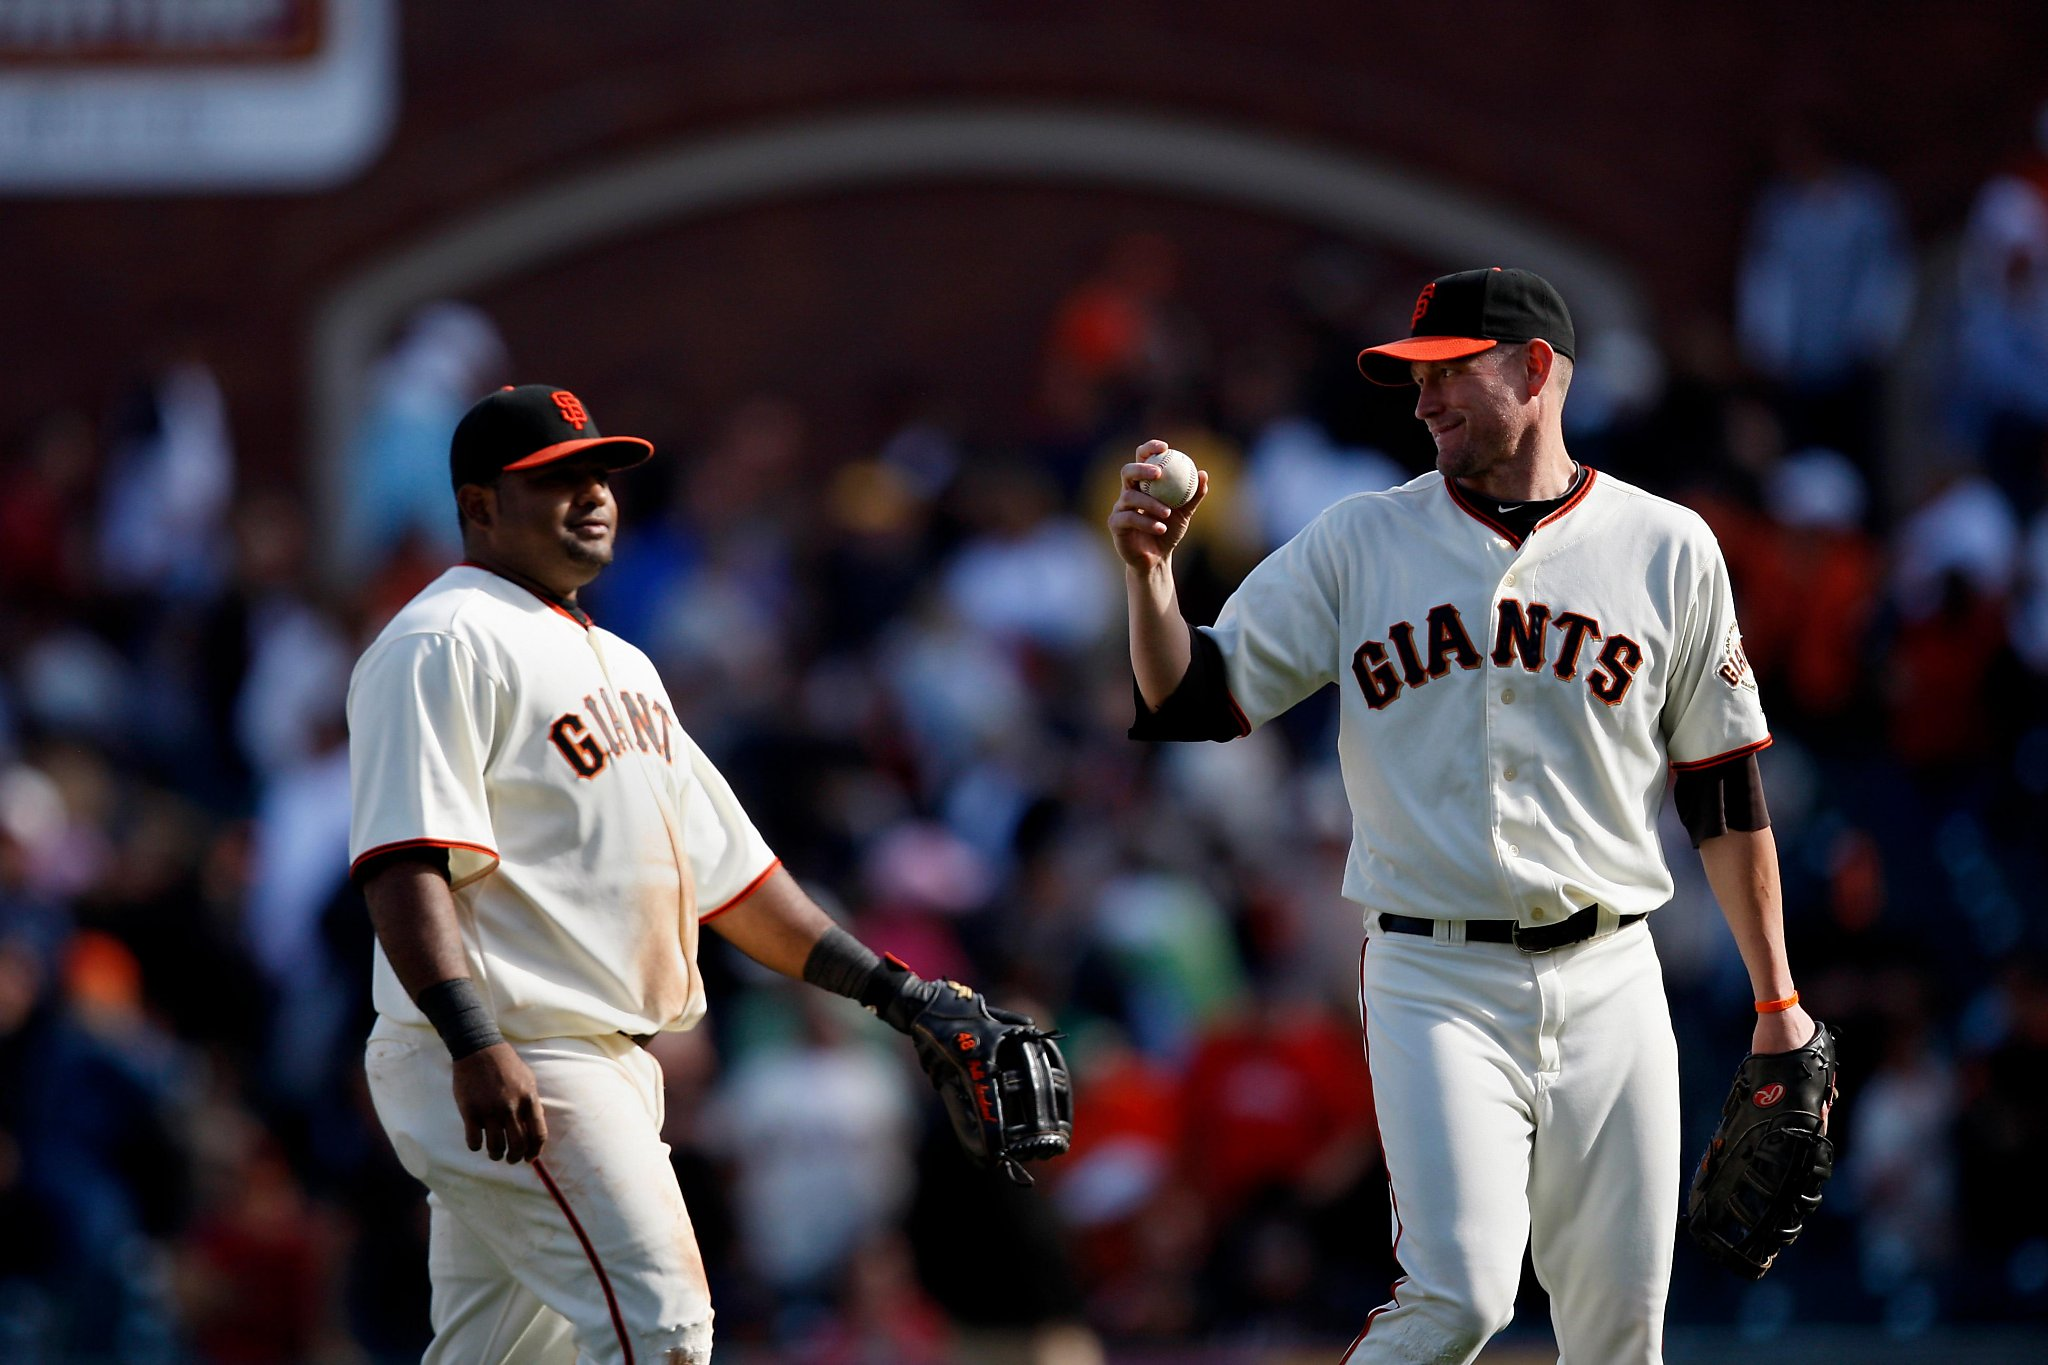 Giants' Pablo Sandoval 'won't be sad' Aubrey Huff is excluded from 2010 reunion